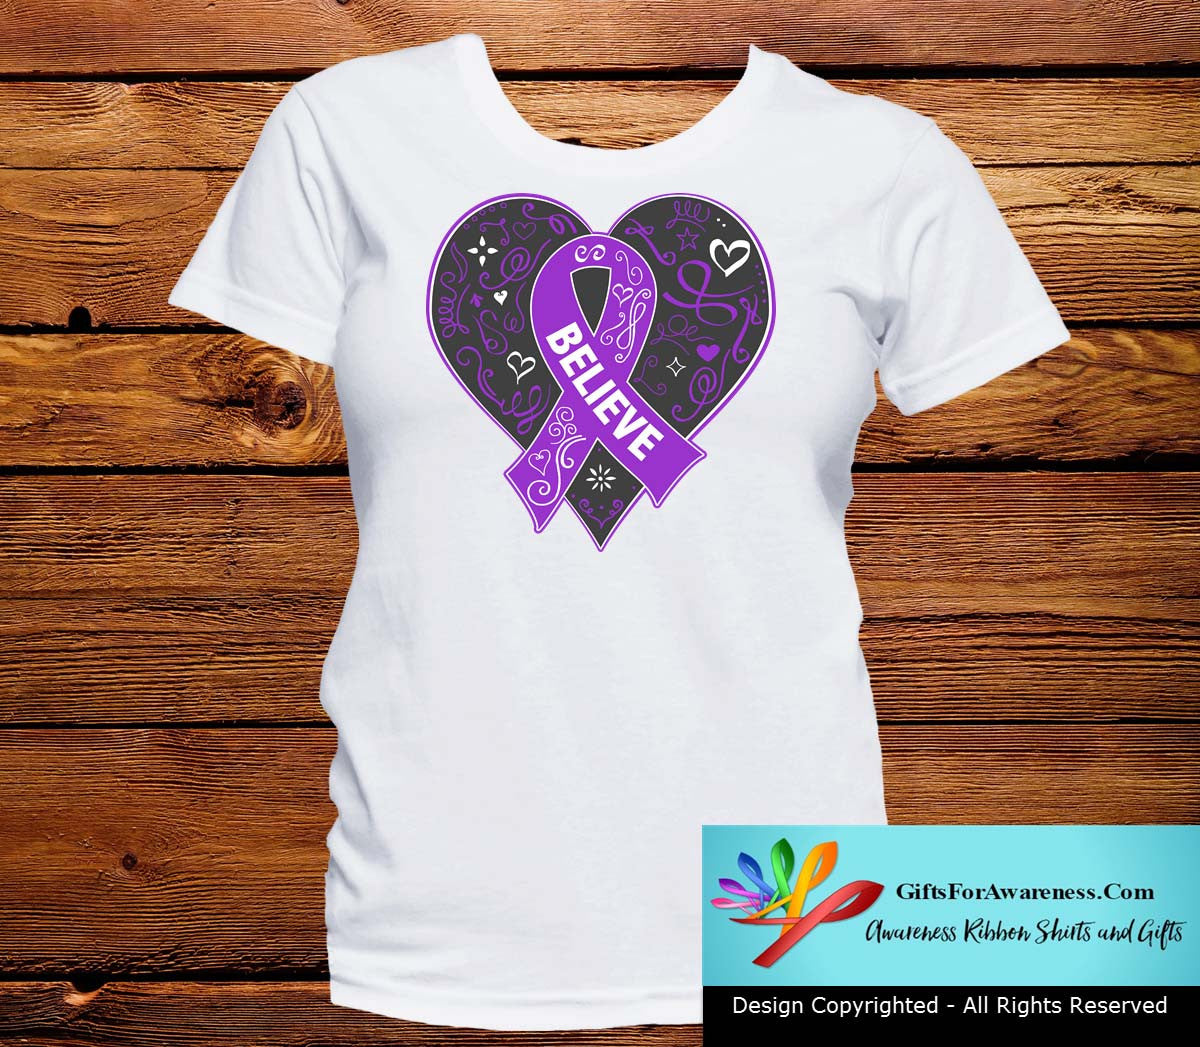 Ulcerative Colitis Believe Heart Ribbon Shirts - GiftsForAwareness